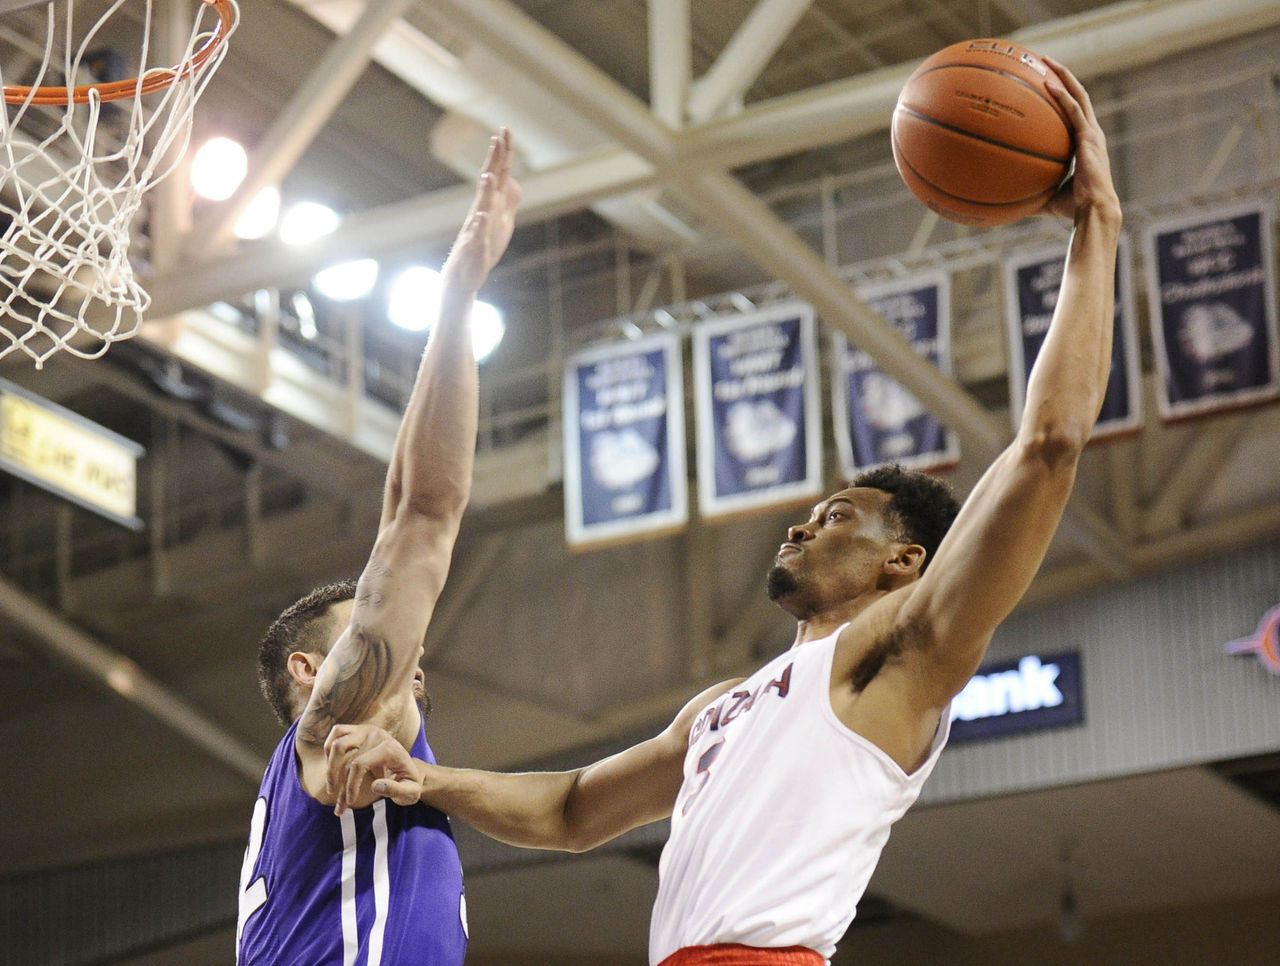 Cropped 2017 01 22t022423z 1119345789 nocid rtrmadp 3 ncaa basketball portland at gonzaga